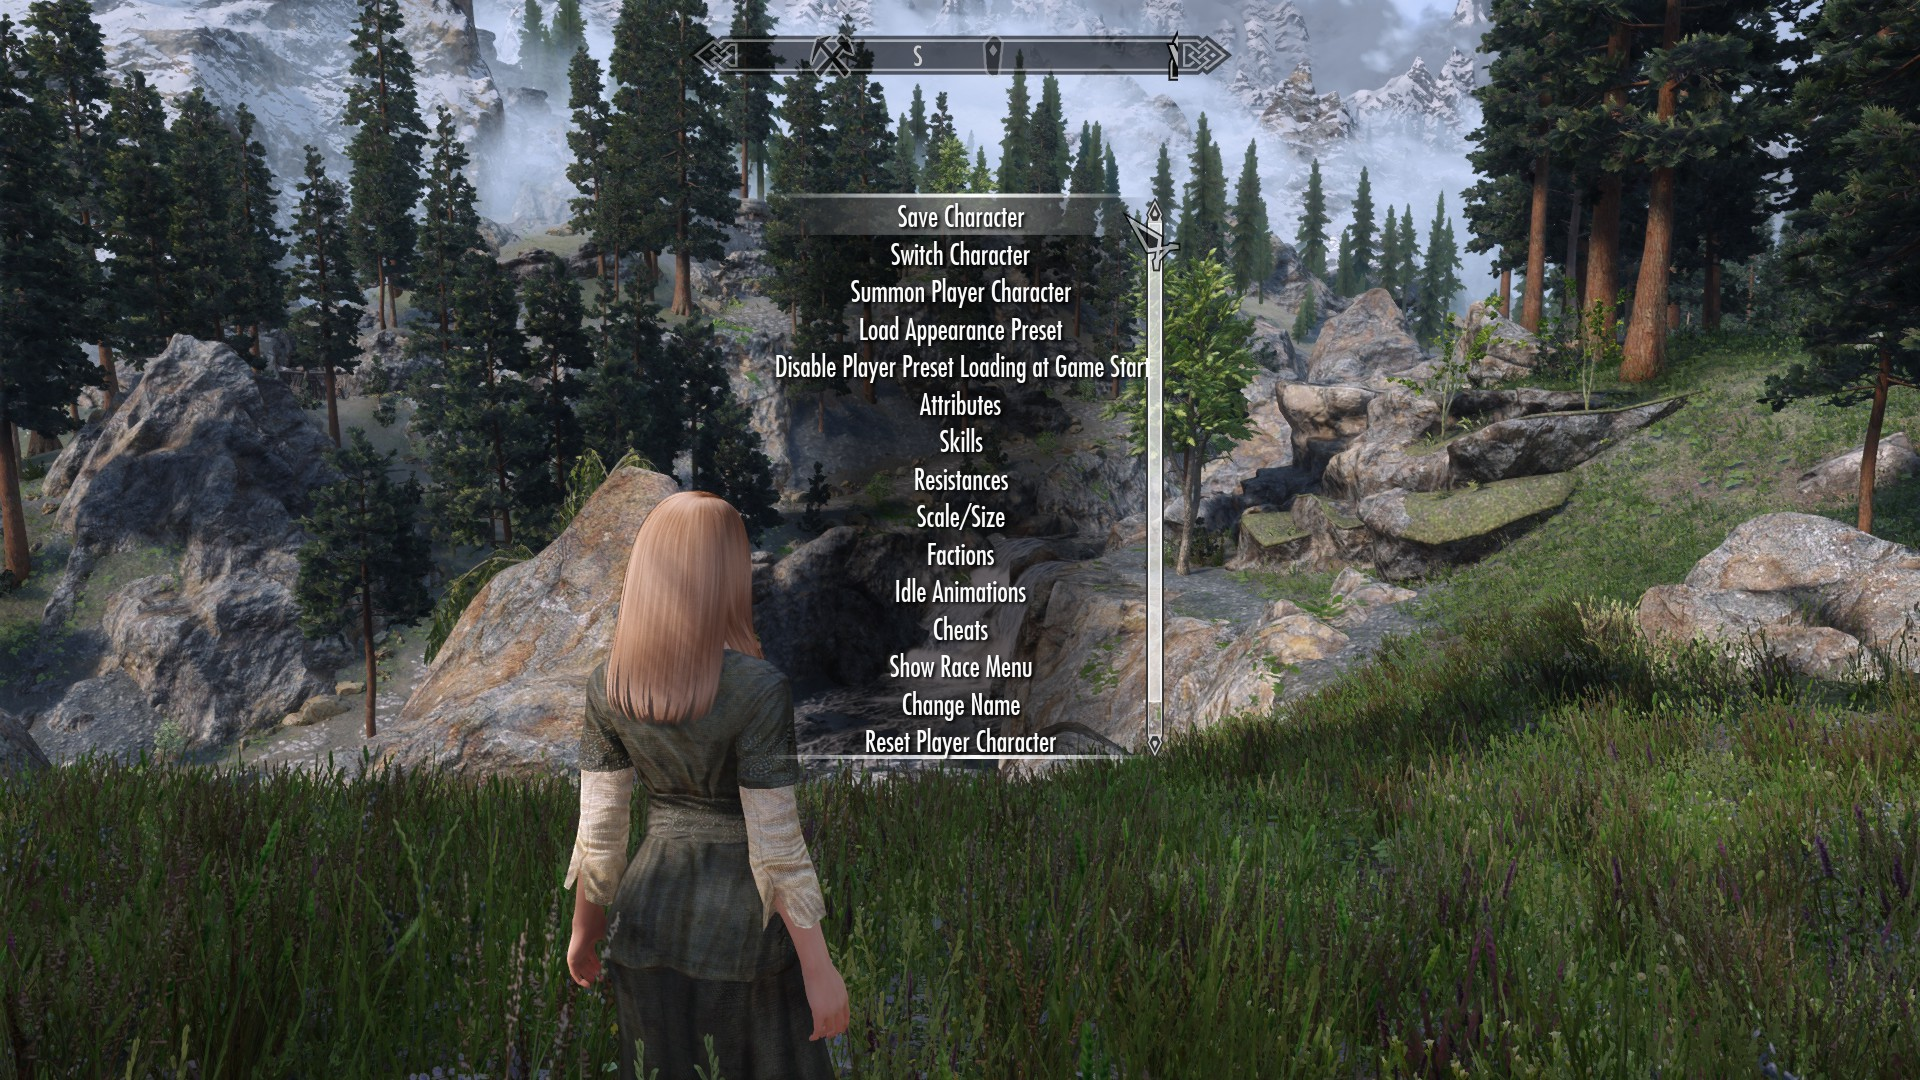 The menu for Project Proteus, one of Skyrim's best mods